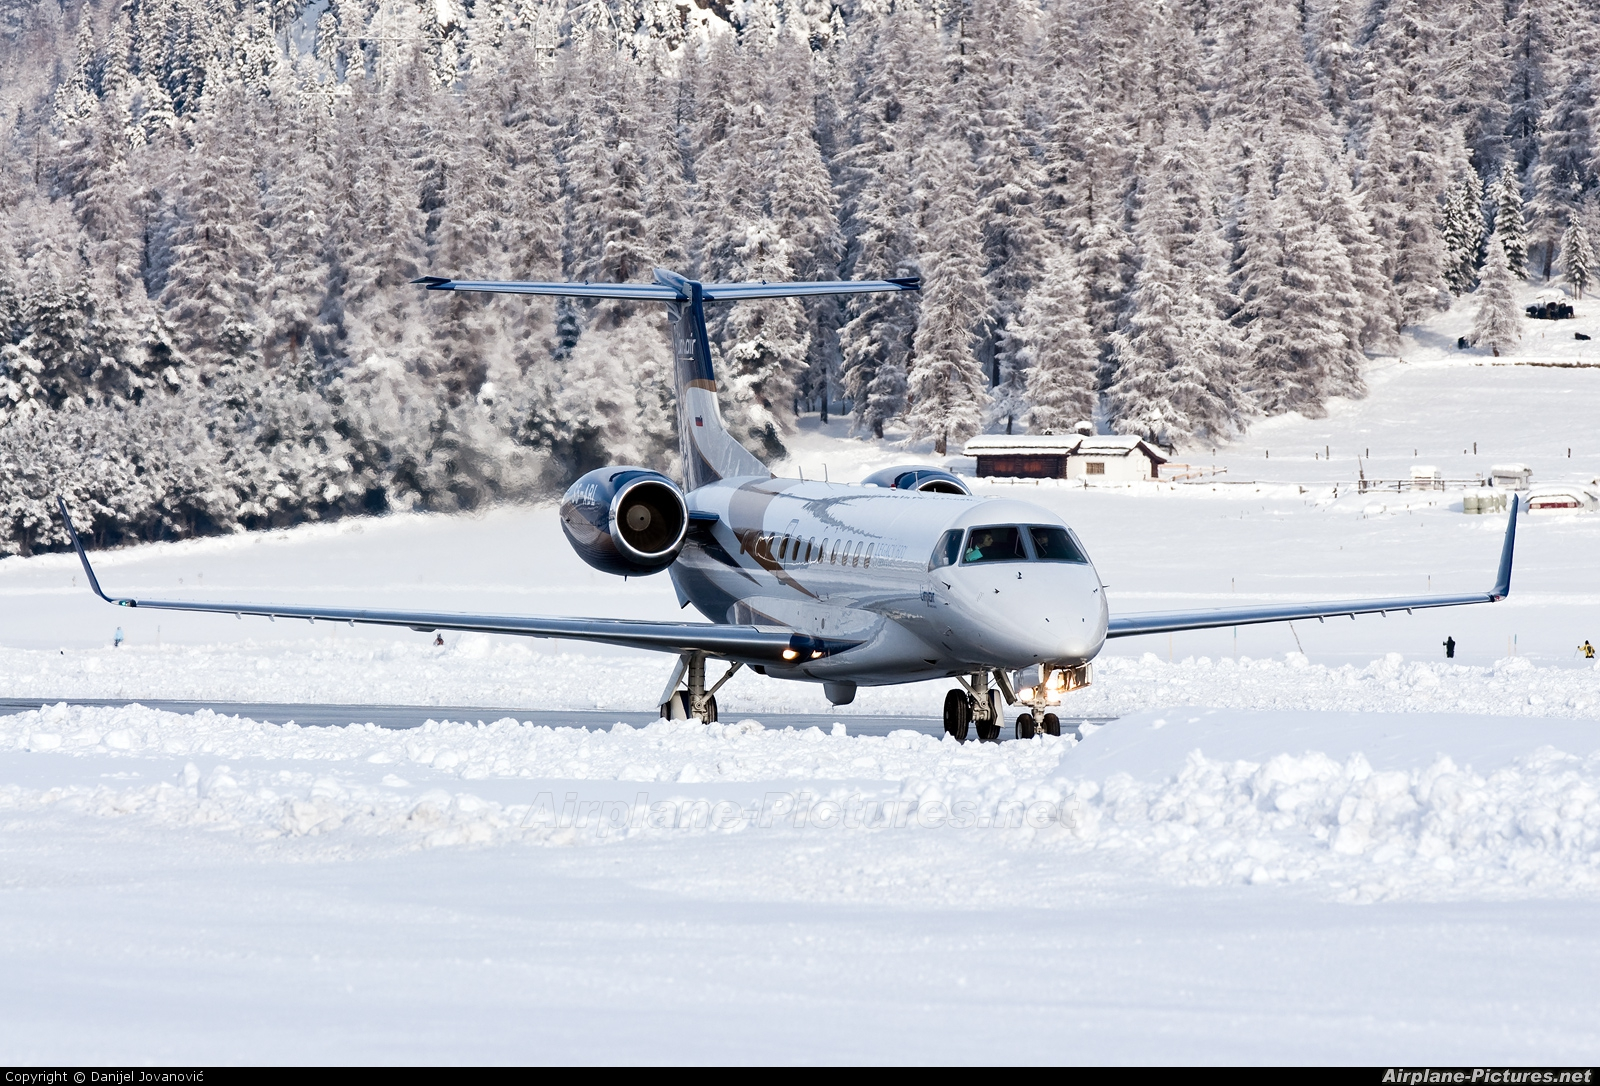 LinxAir S5-ABL aircraft at Samedan - Engadin